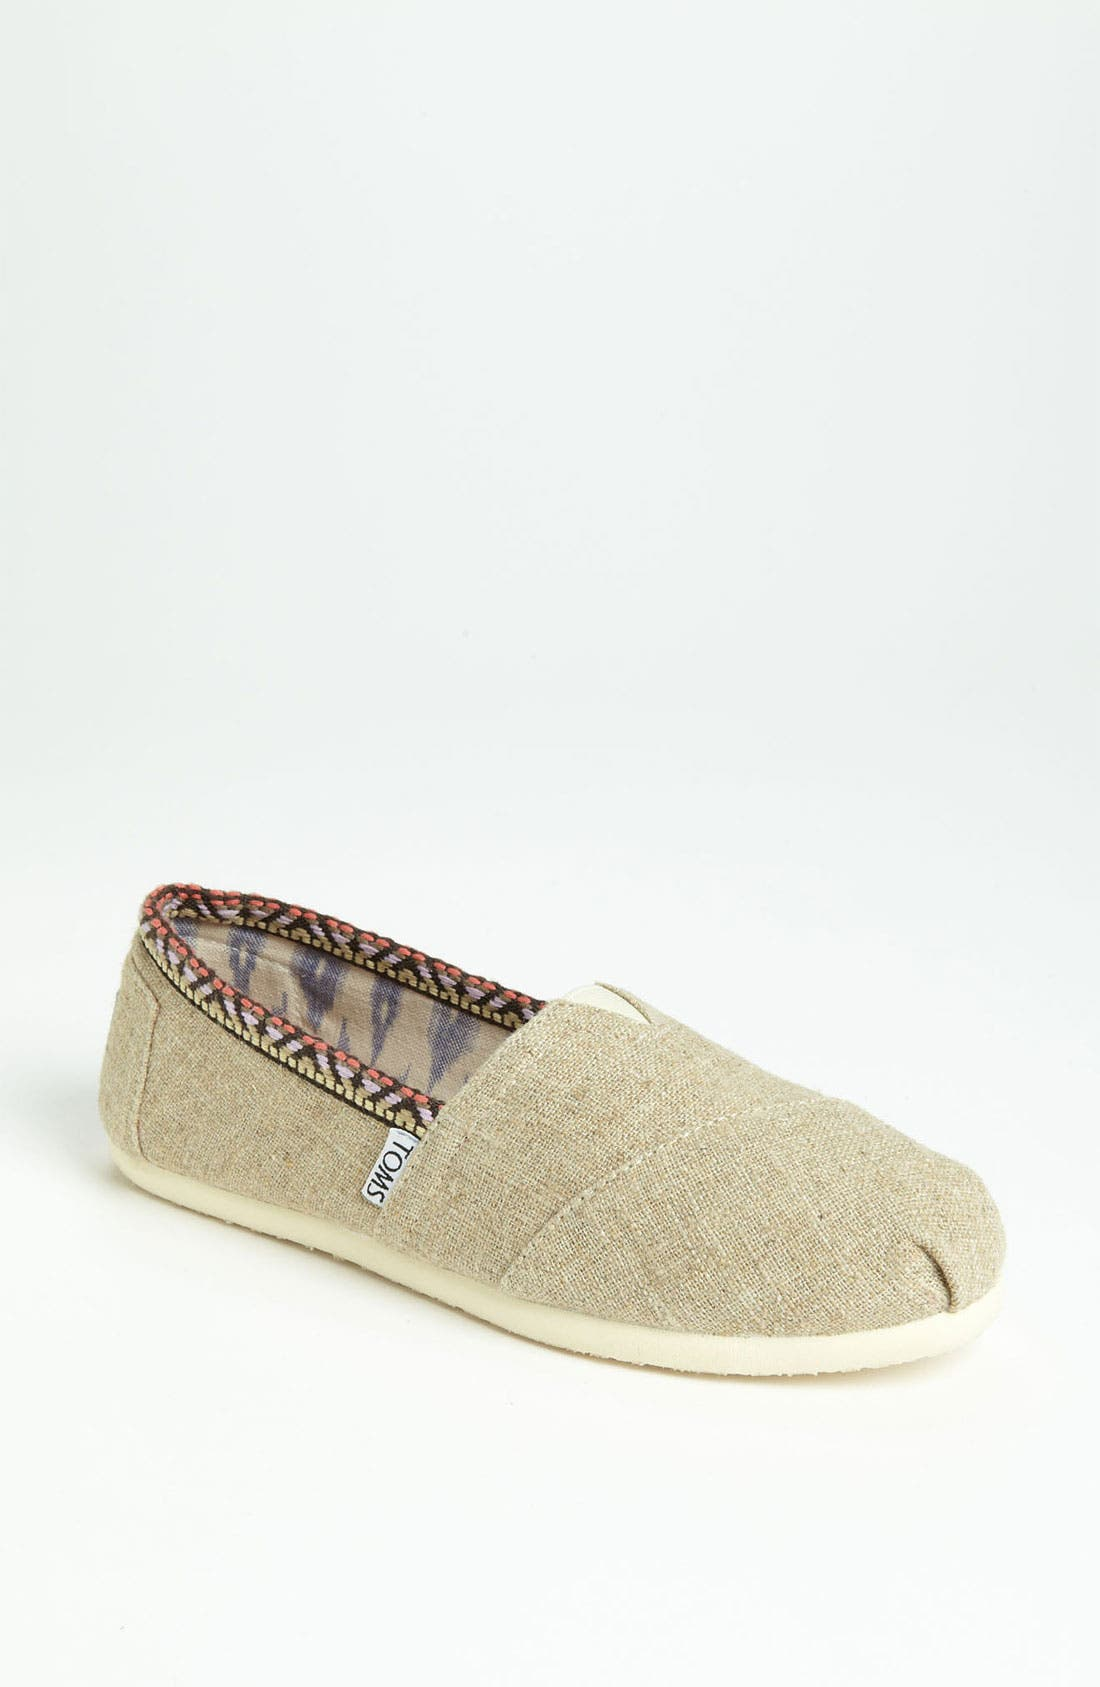 Alternate Image 1 Selected - TOMS 'Classic - Trim' Slip-On (Women)